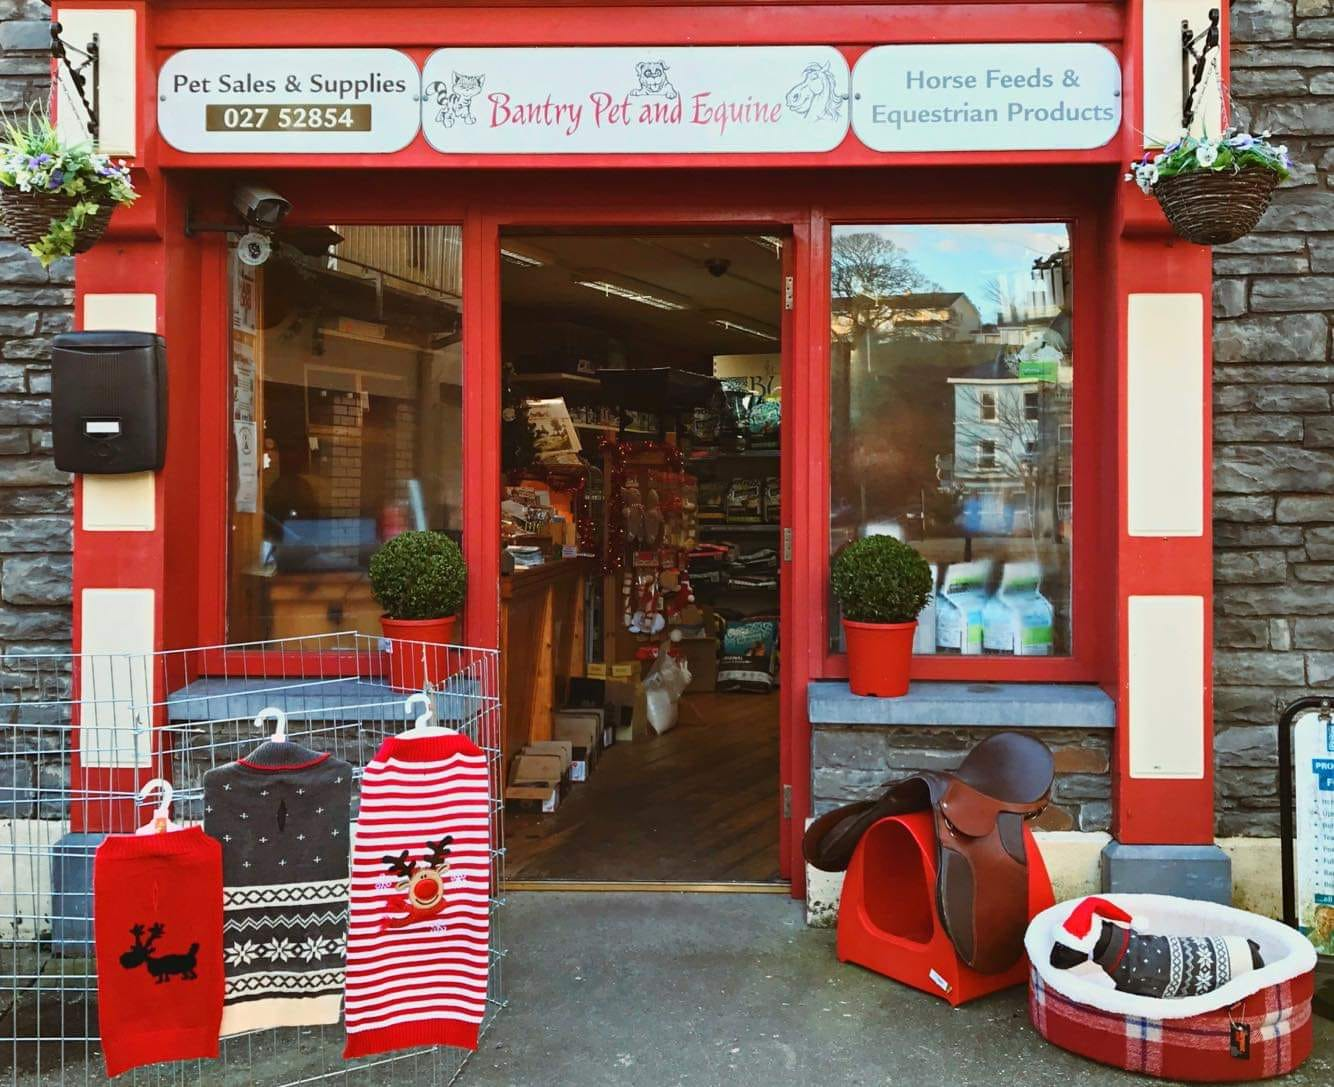 Bantry Pet and Equine